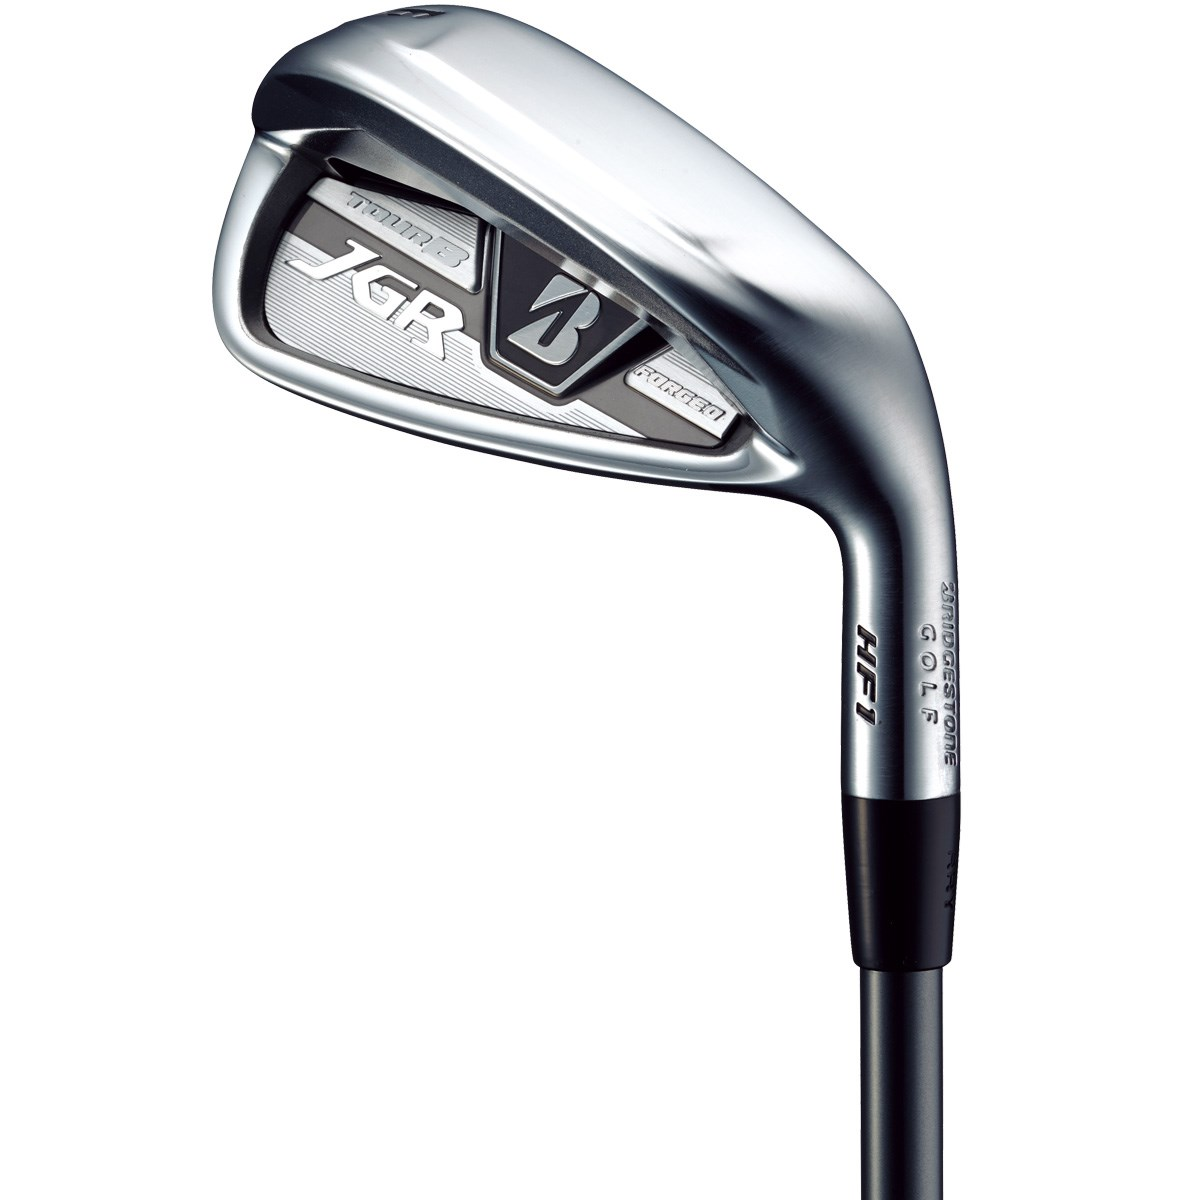 ブリヂストン(BRIDGESTONE GOLF) TOUR B JGR HF1 アイアン(単品) Air Speeder G for Iron